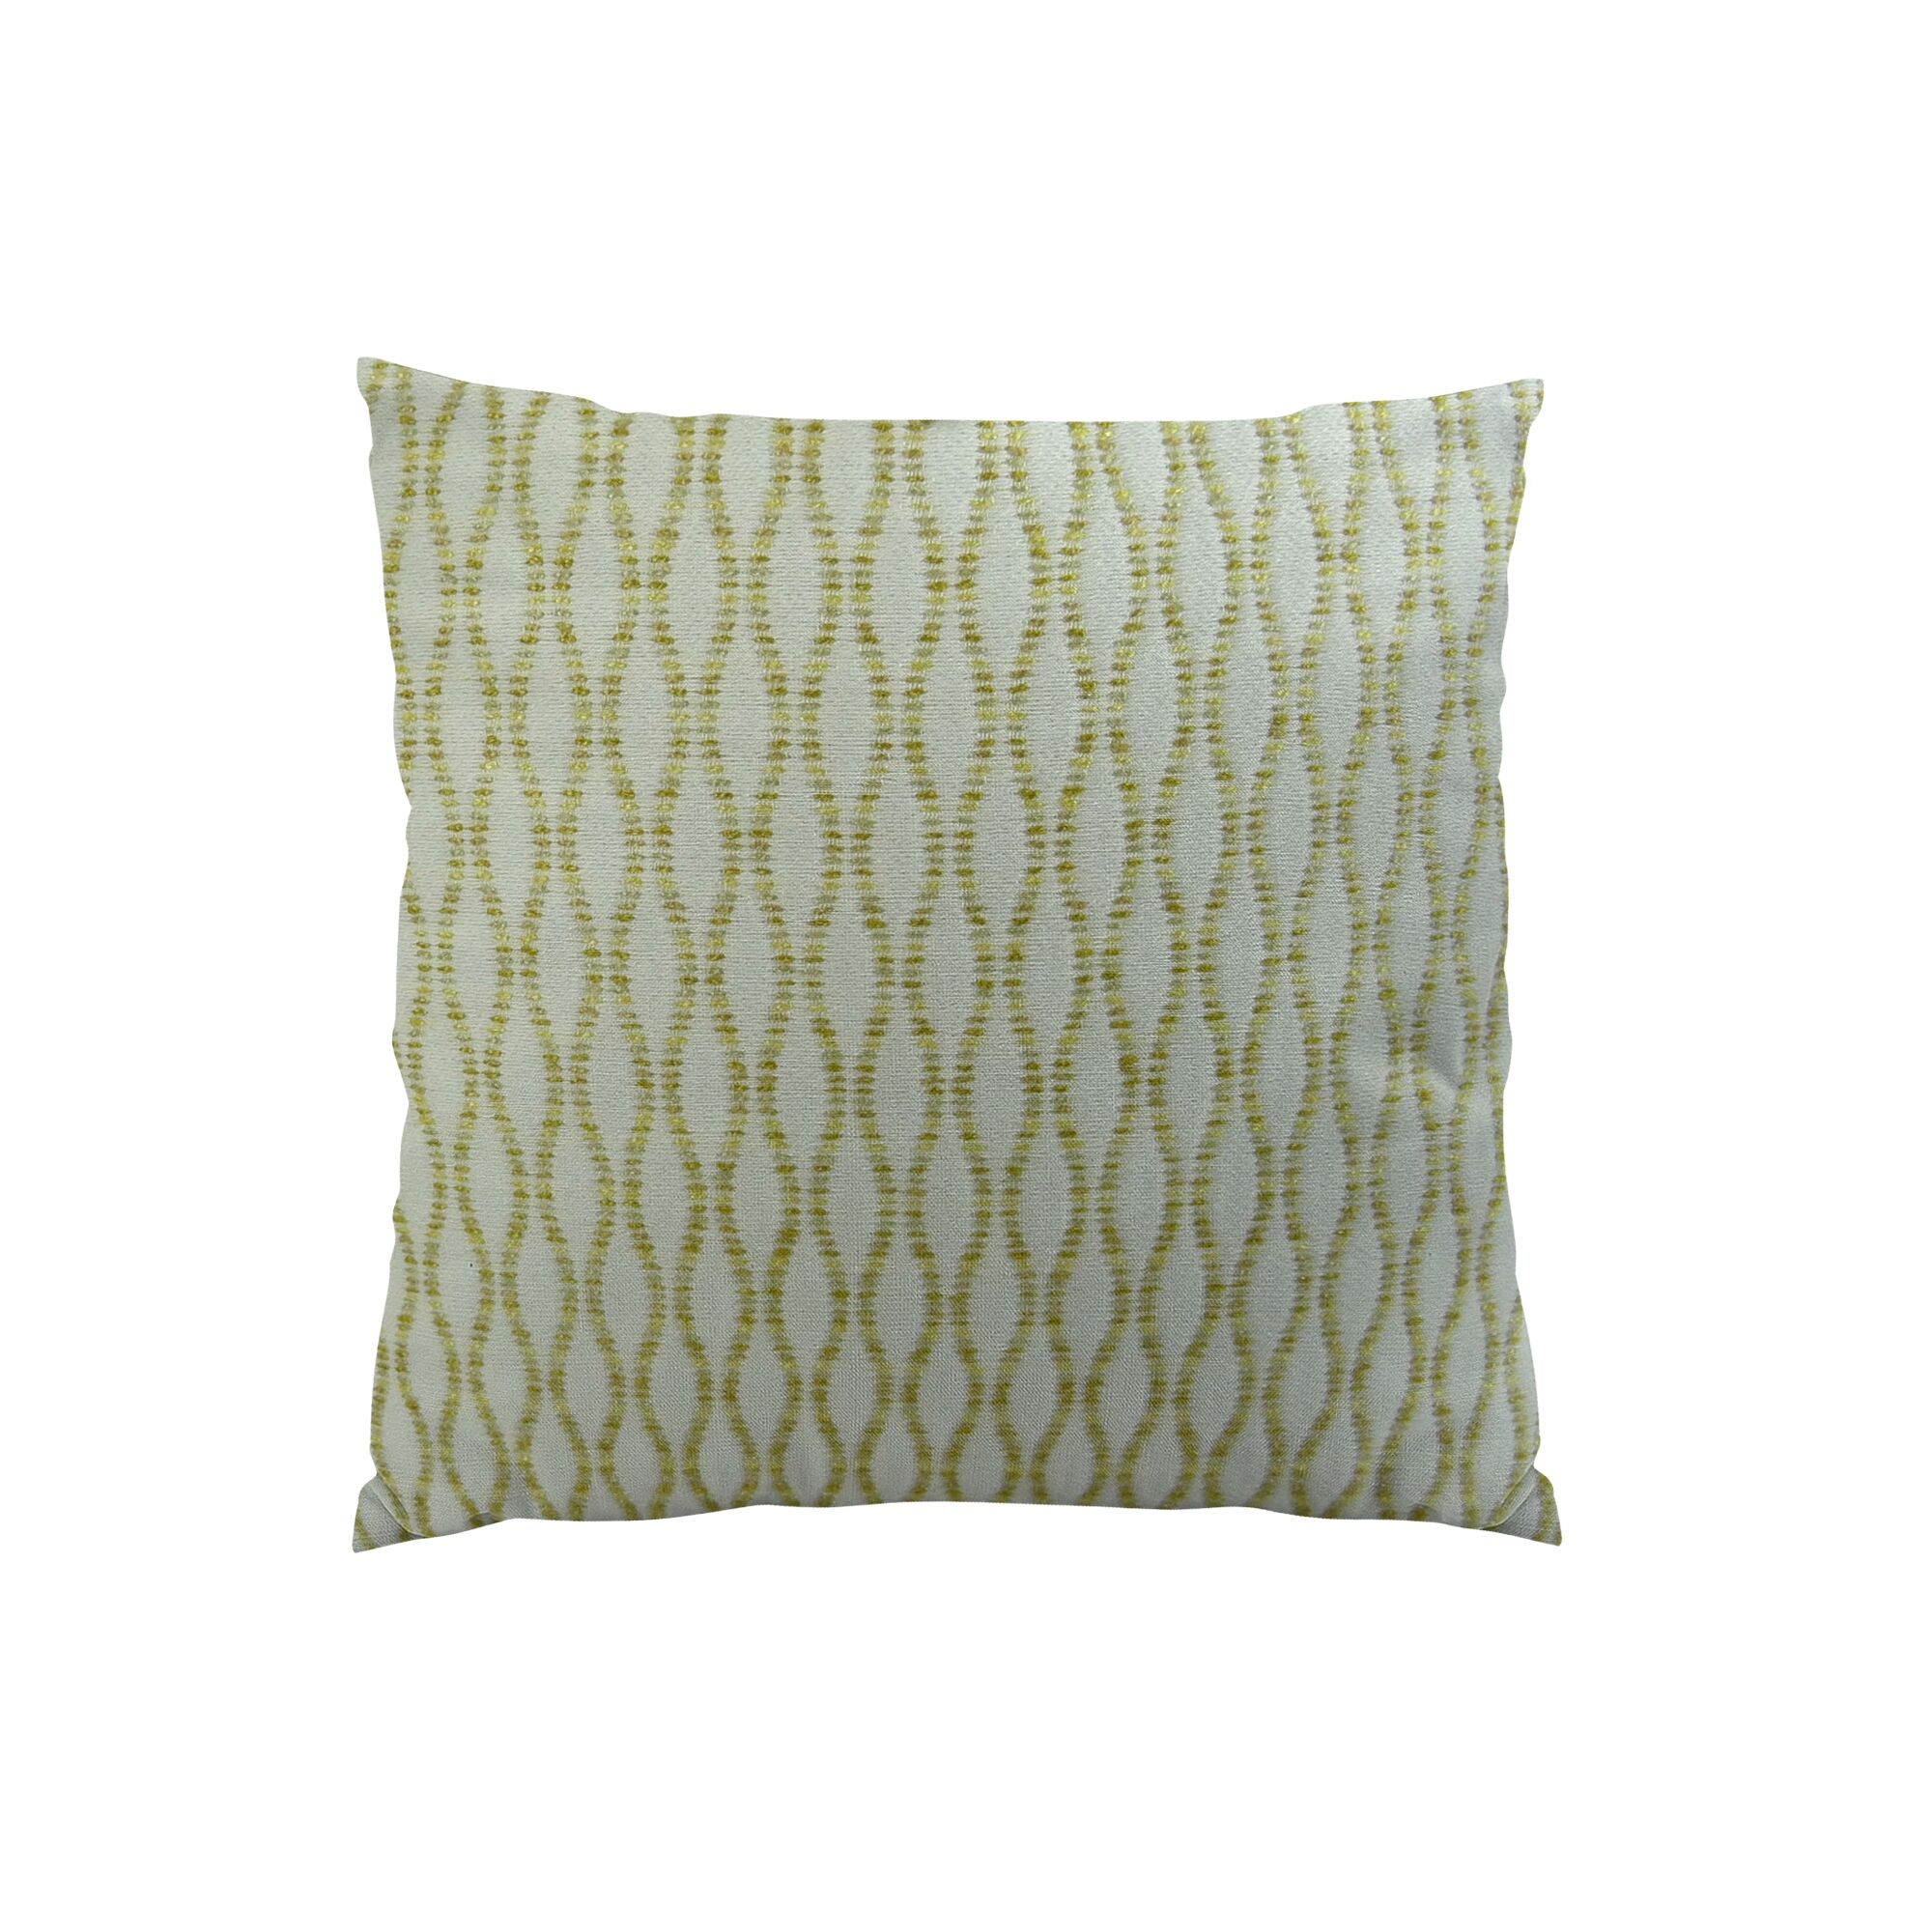 Winding Road Zest Handmade Throw Pillow  Size: 24